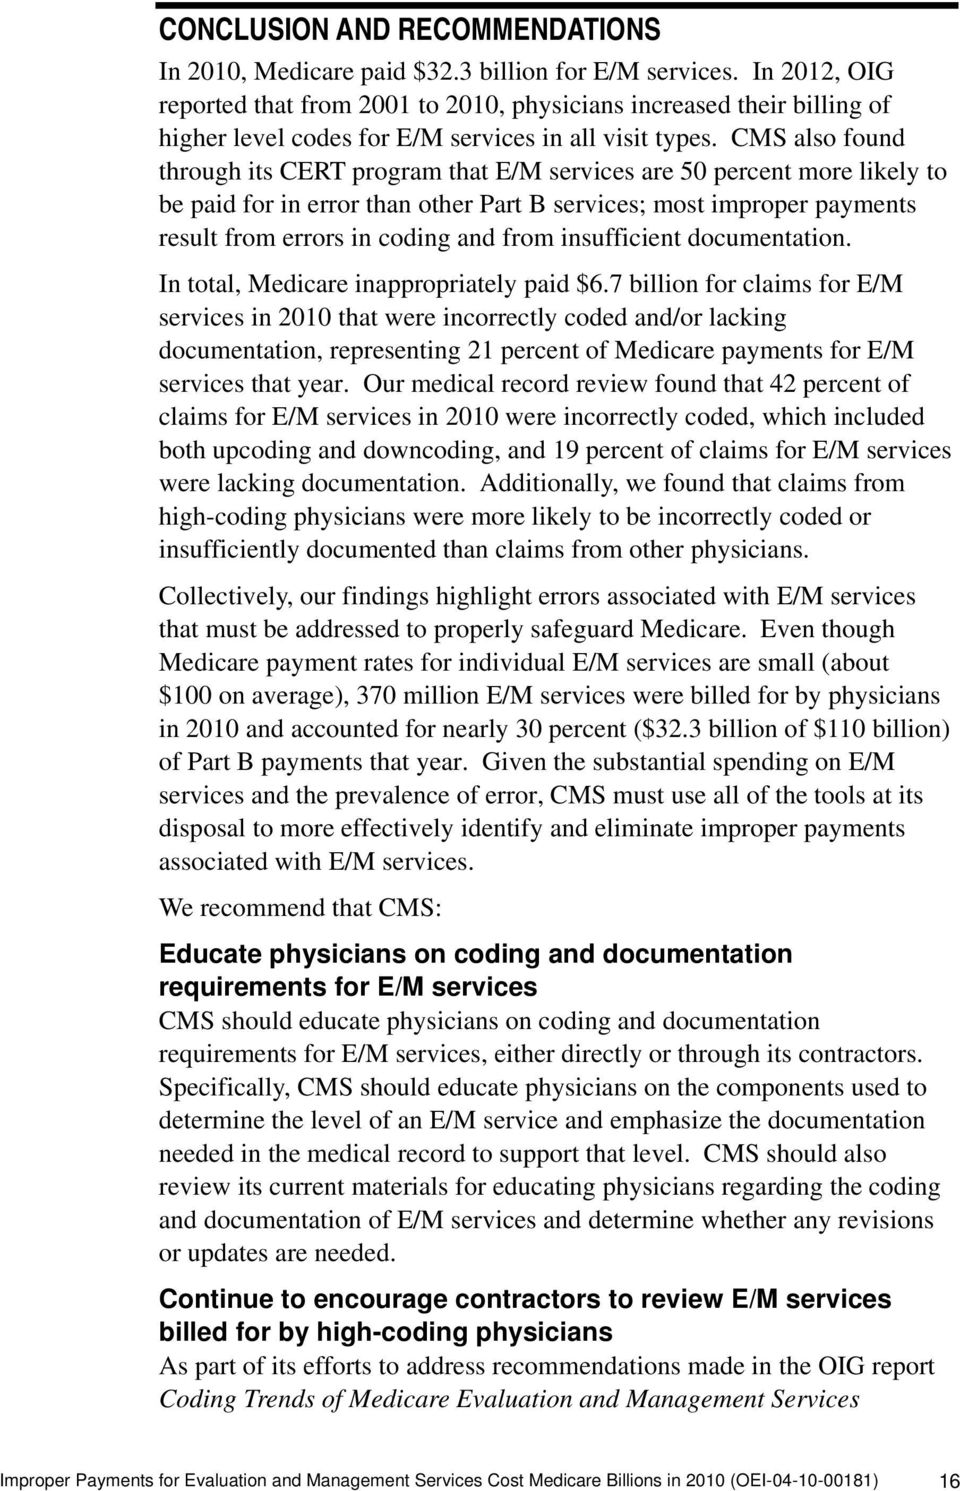 CMS also found through its CERT program that E/M services are 50 percent more likely to be paid for in error than other Part B services; most improper payments result from errors in coding and from